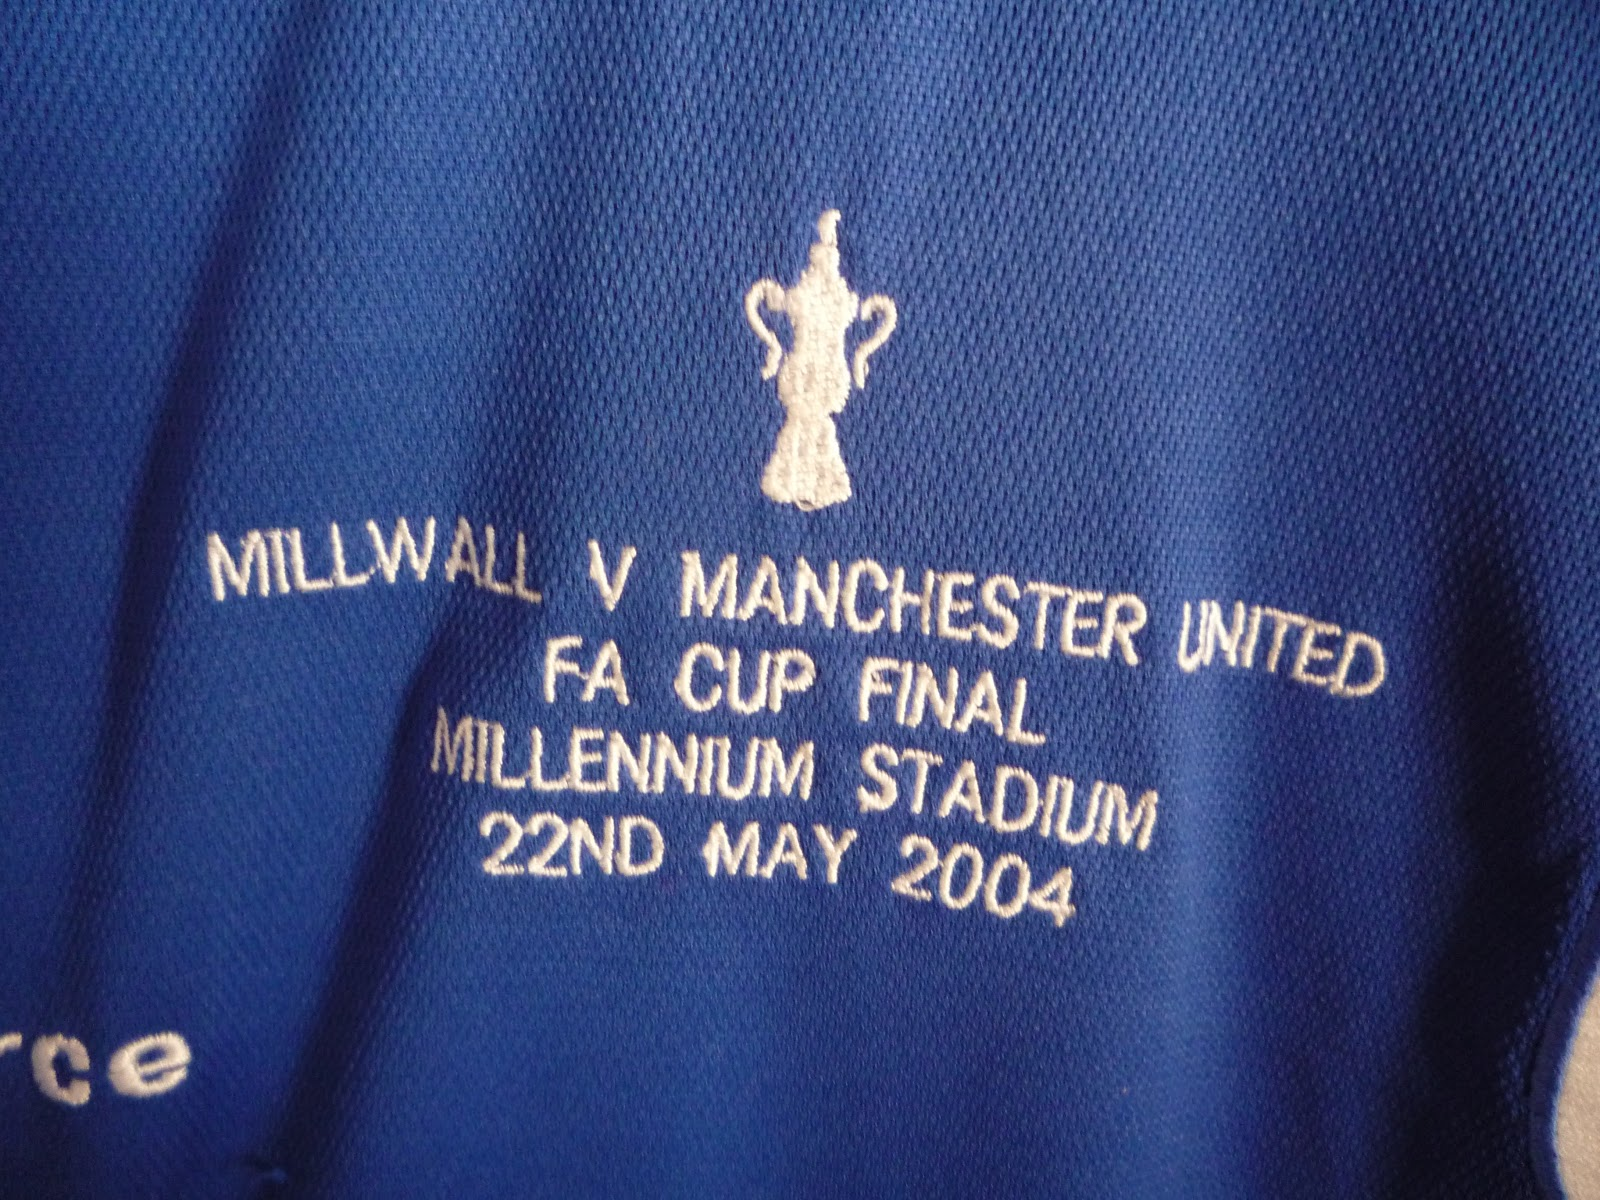 d423e17ea The sad thing is that Millwall lost 3-0 to Man Utd